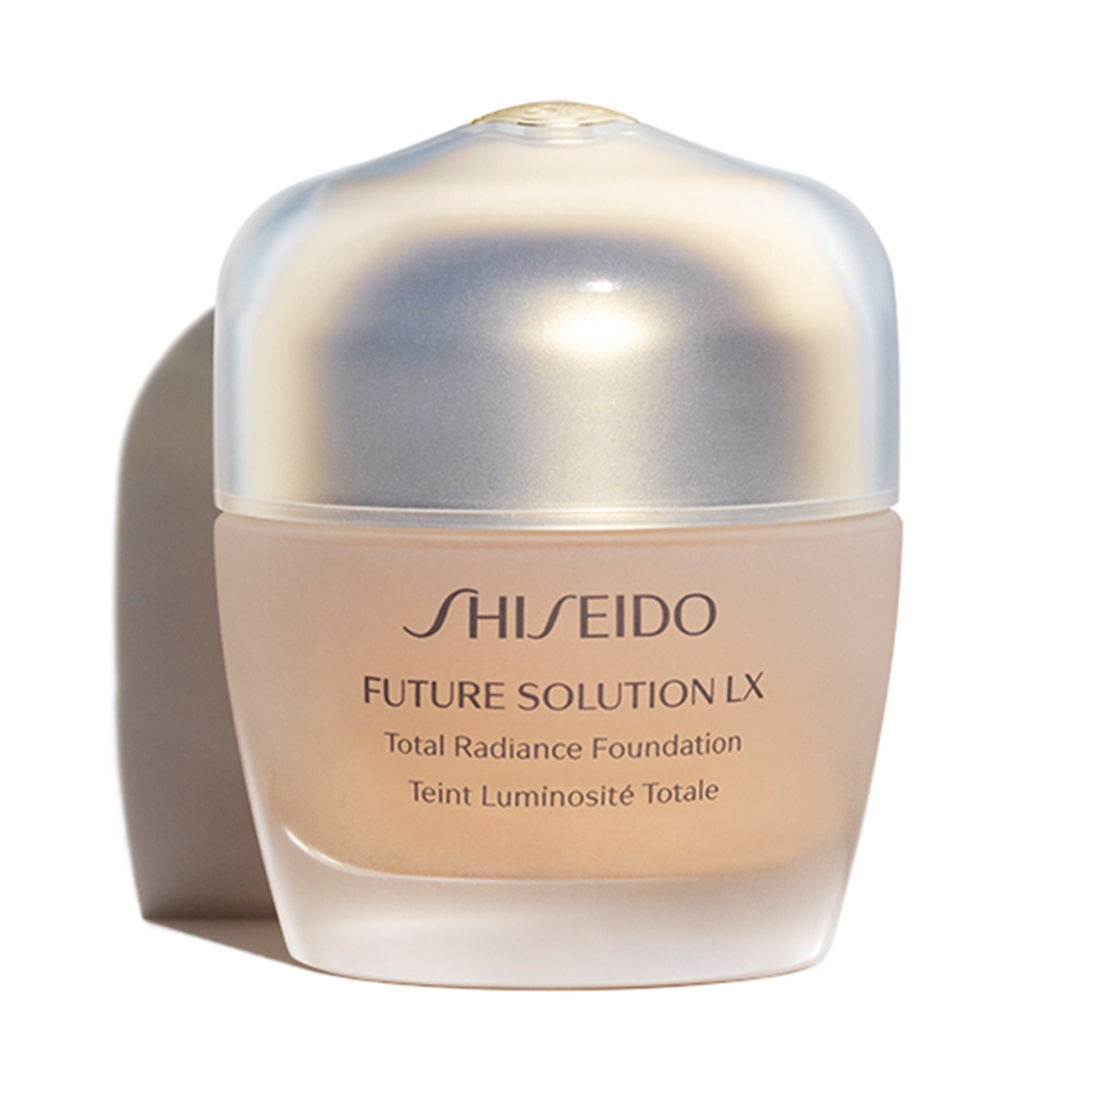 Future Solution LX Total Radiance Foundation 30ml (Golden 3)